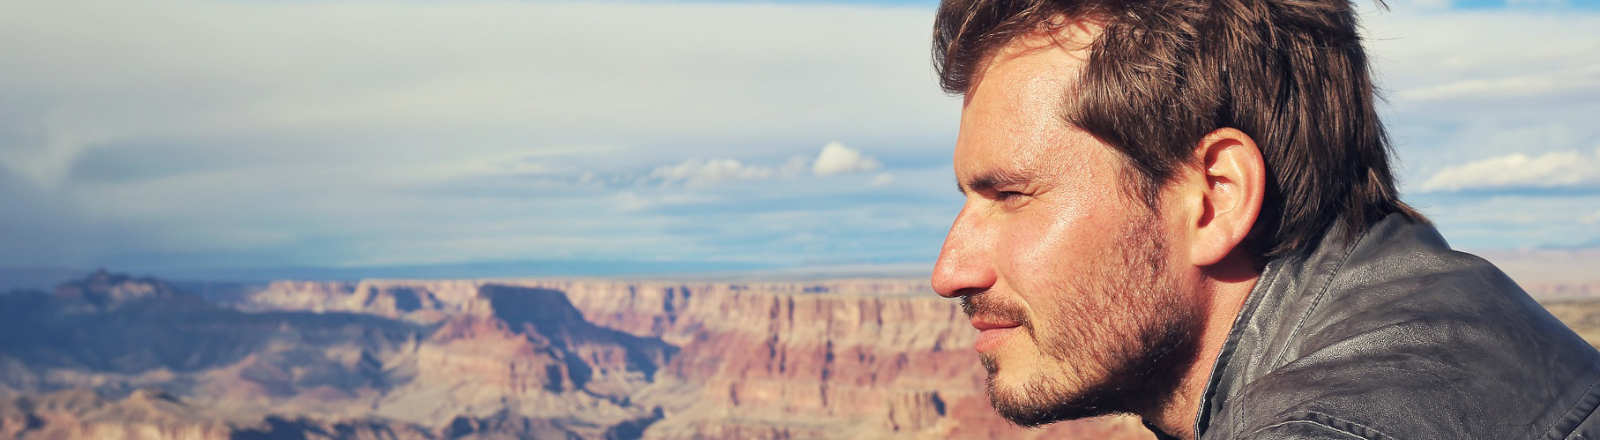 Der Filmemacher Clemens Bittner am Grand Canyon